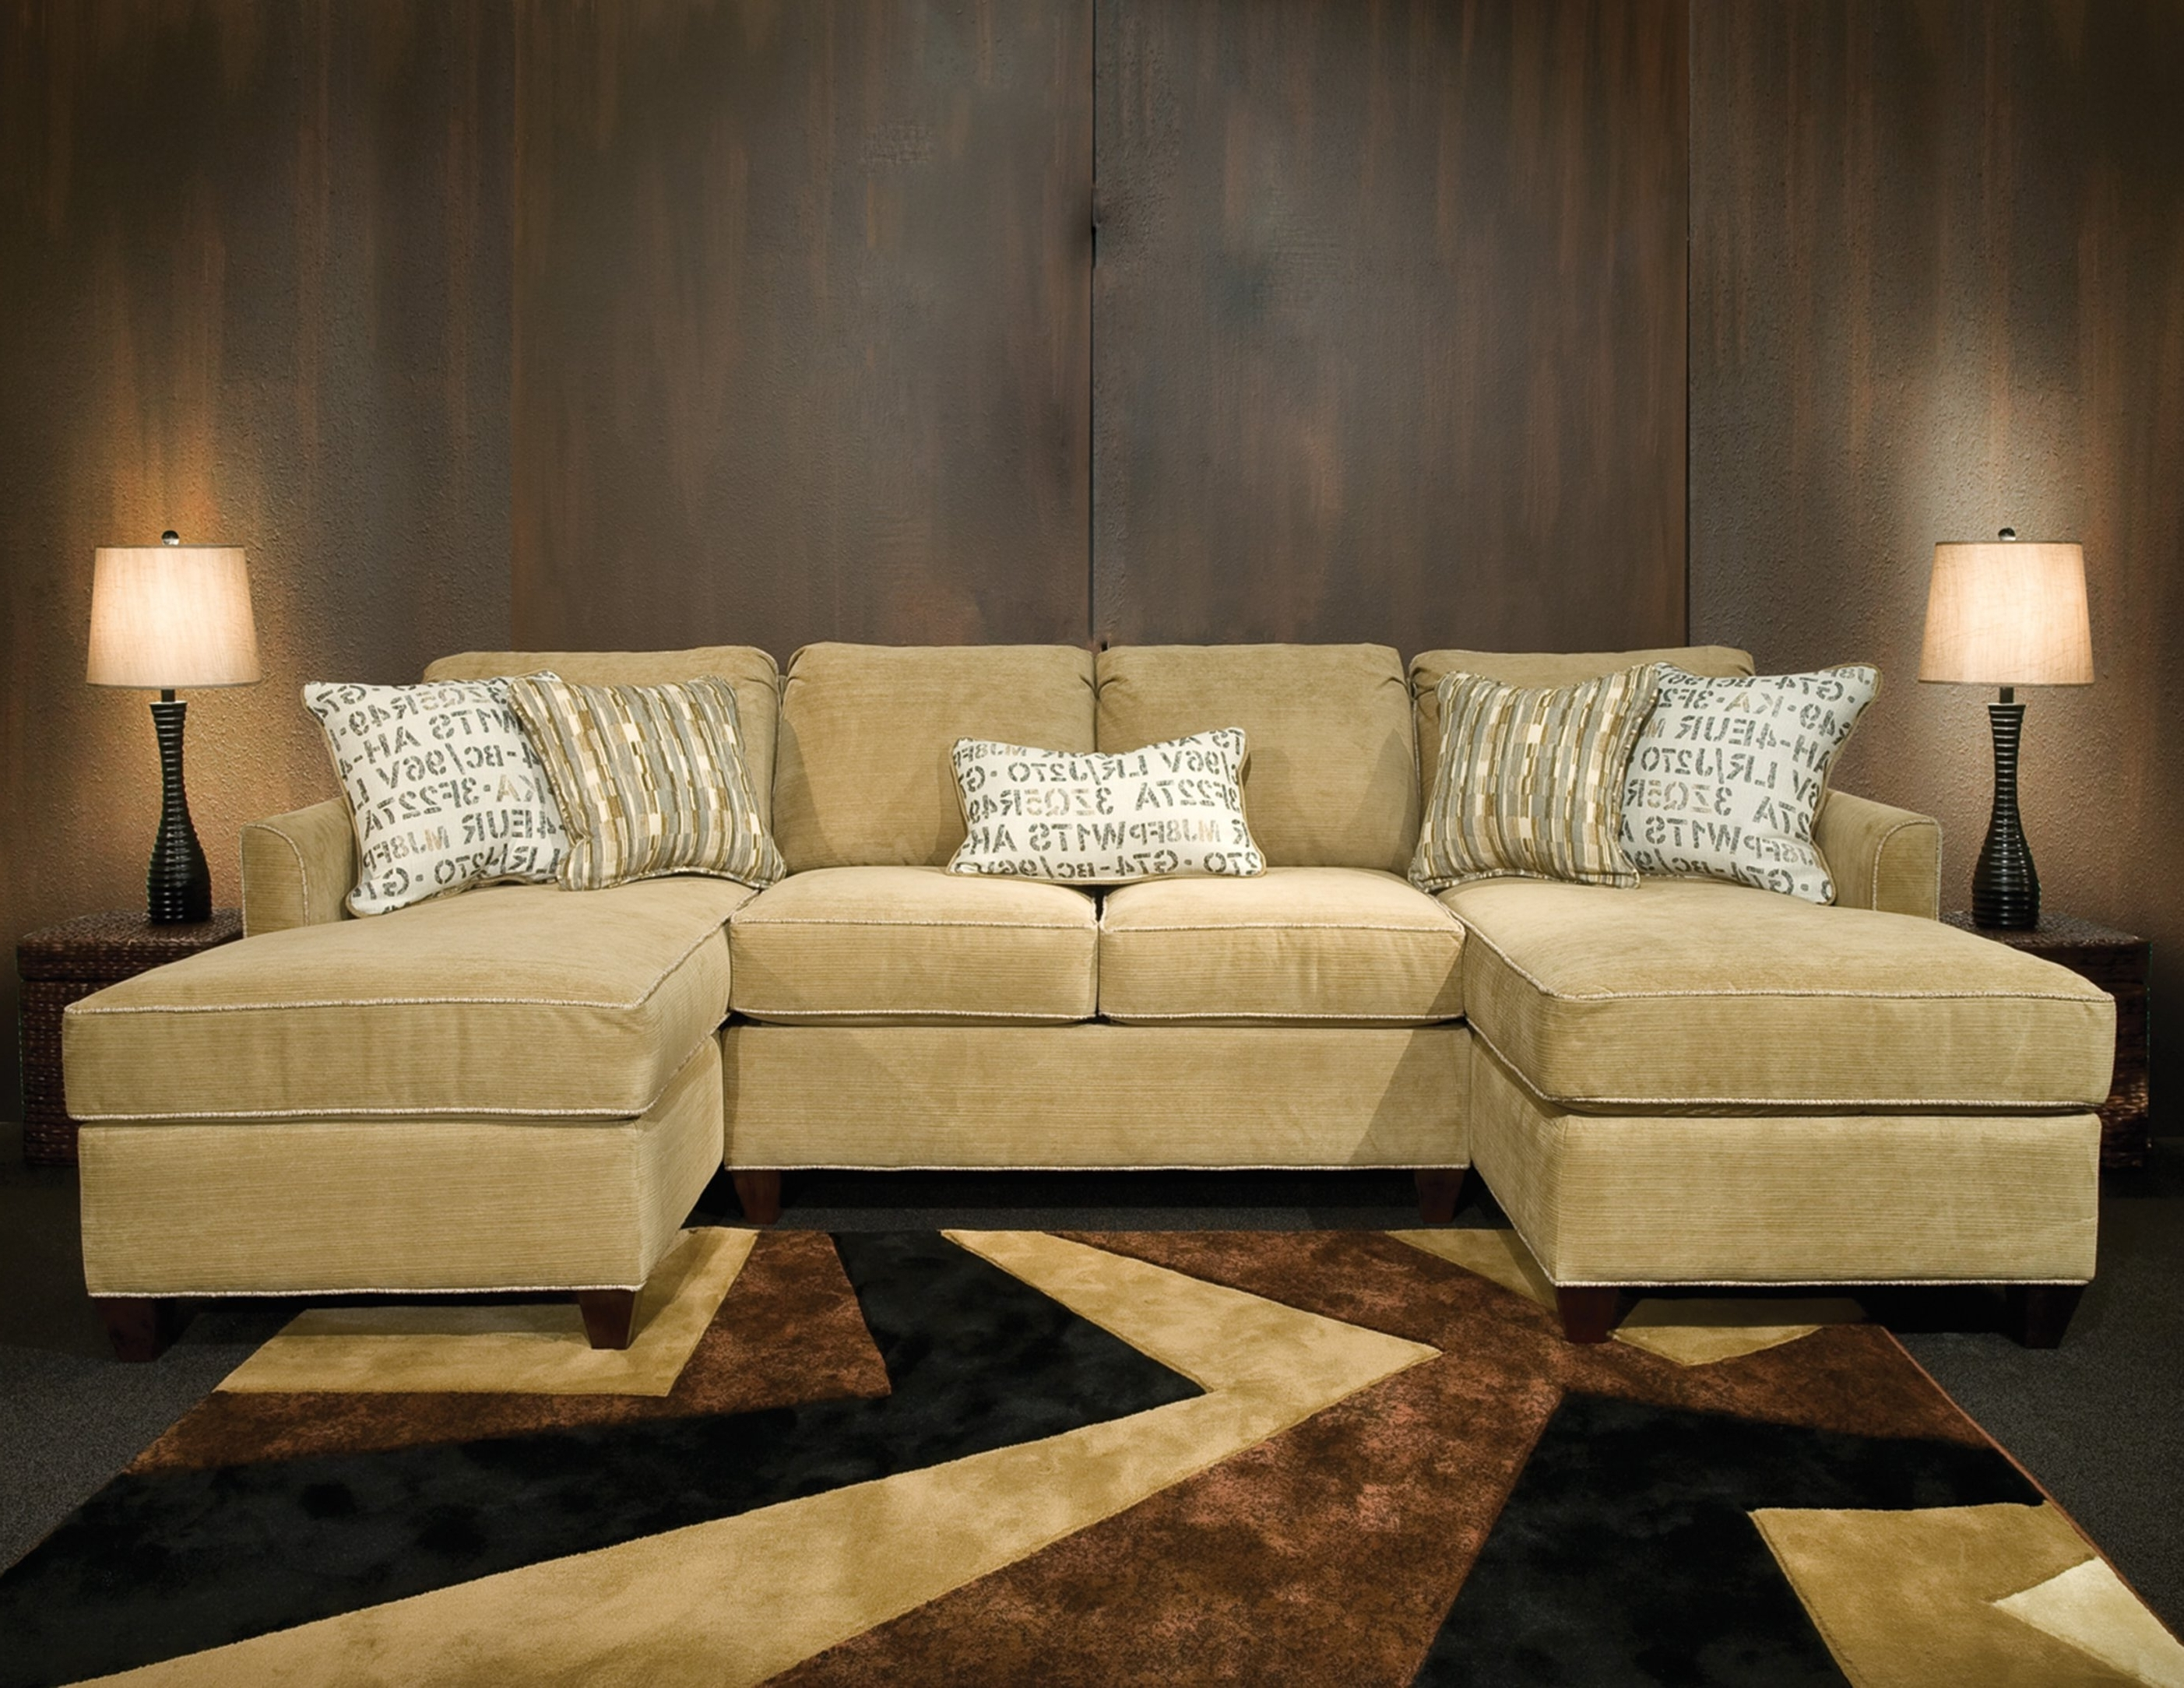 Popular Double Chaise Lounge Sofa 15 In Sofas And Couches Ideas Regarding Pertaining To Double Chaise Lounge Sofas (View 5 of 15)